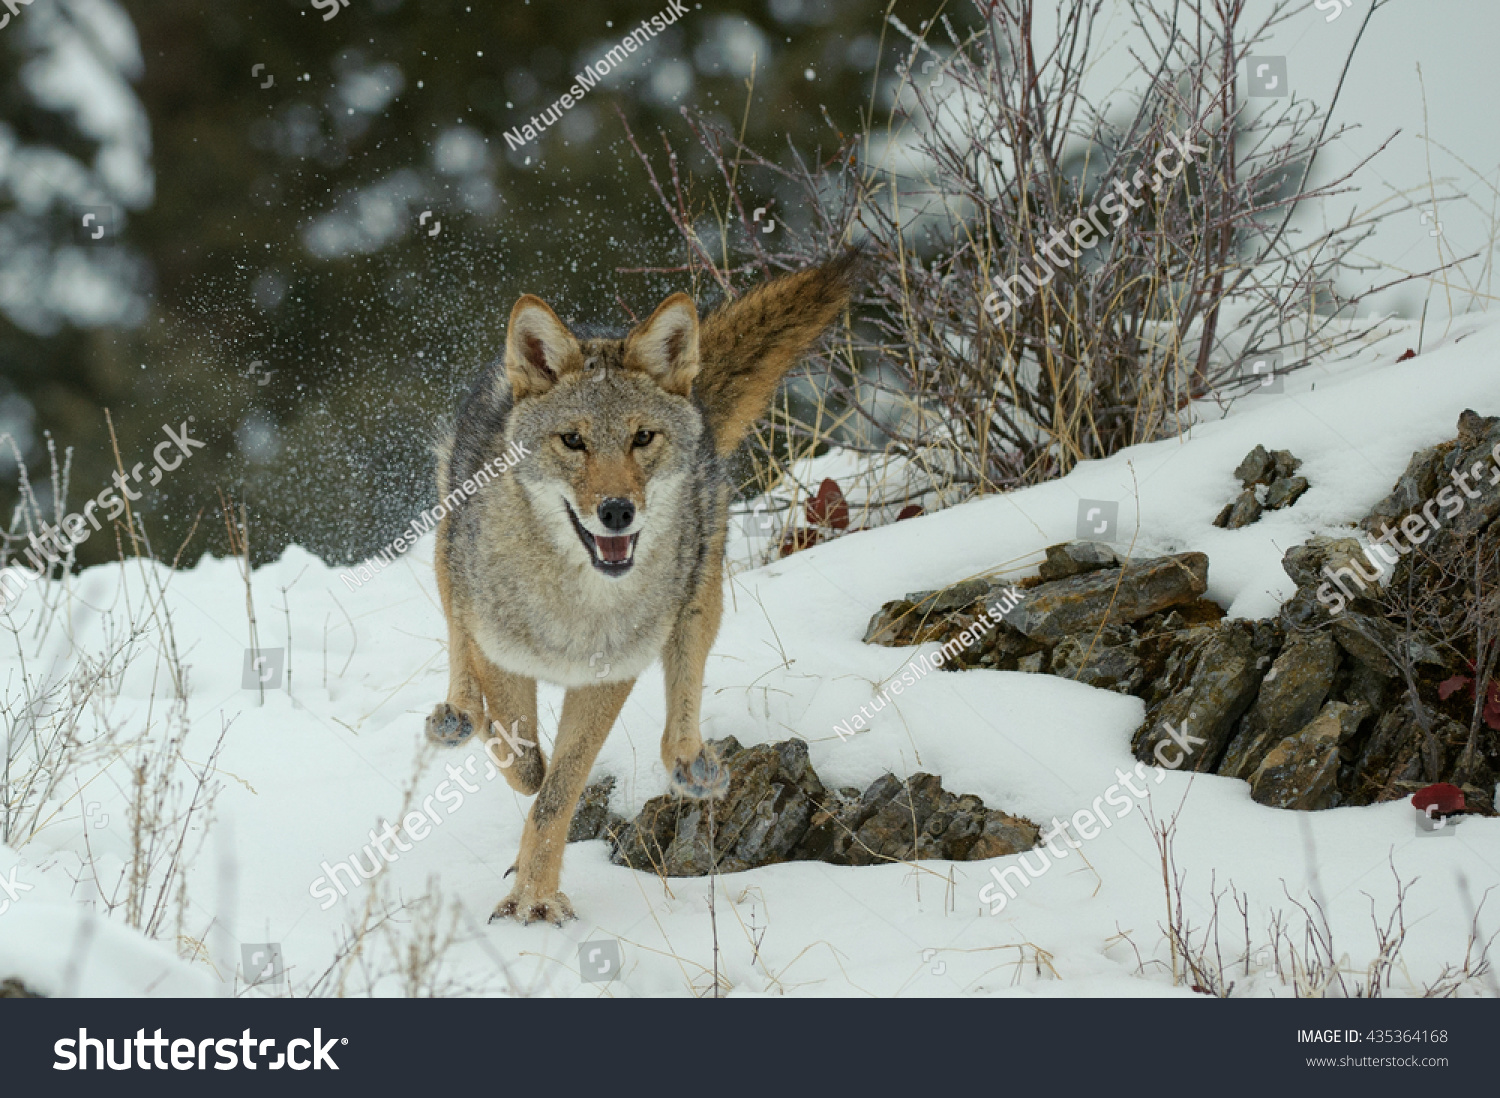 Coyote (Canis Latrans) - Running Stock Photo 435364168 ...  Coyote (Canis L...